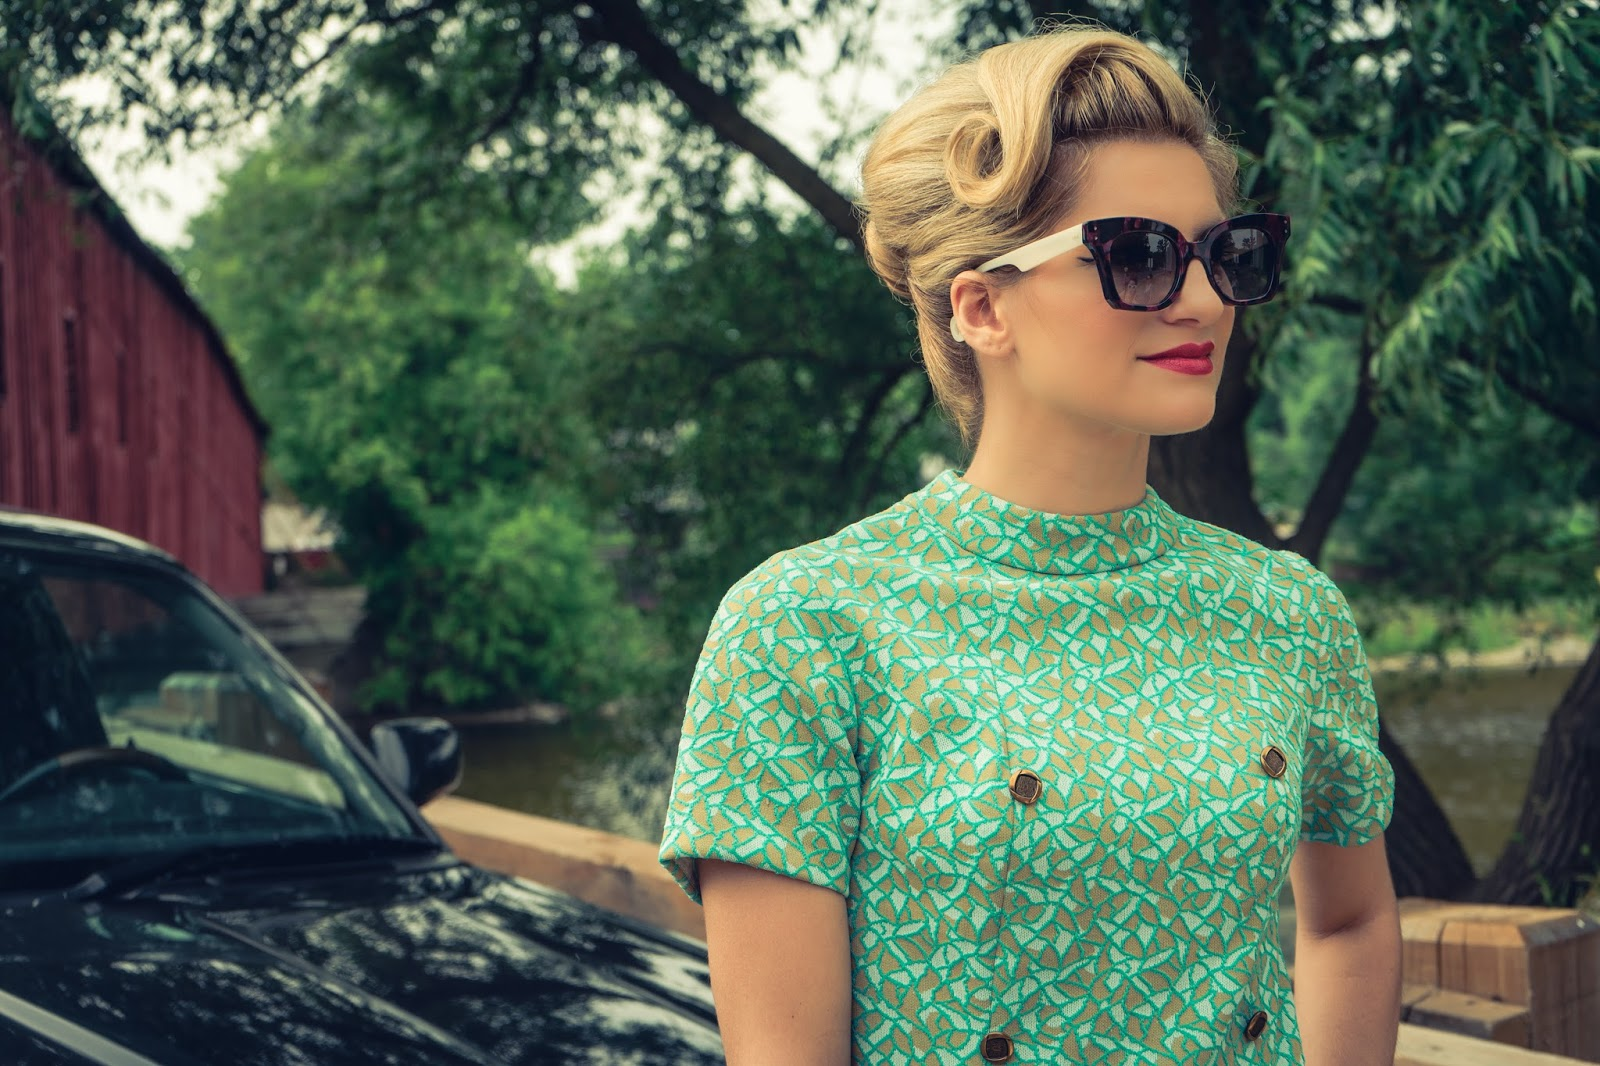 Bijuleni - Pin Up Updo hair, Vintage Retro Dress and Jean Philippe Joly Sunglasses